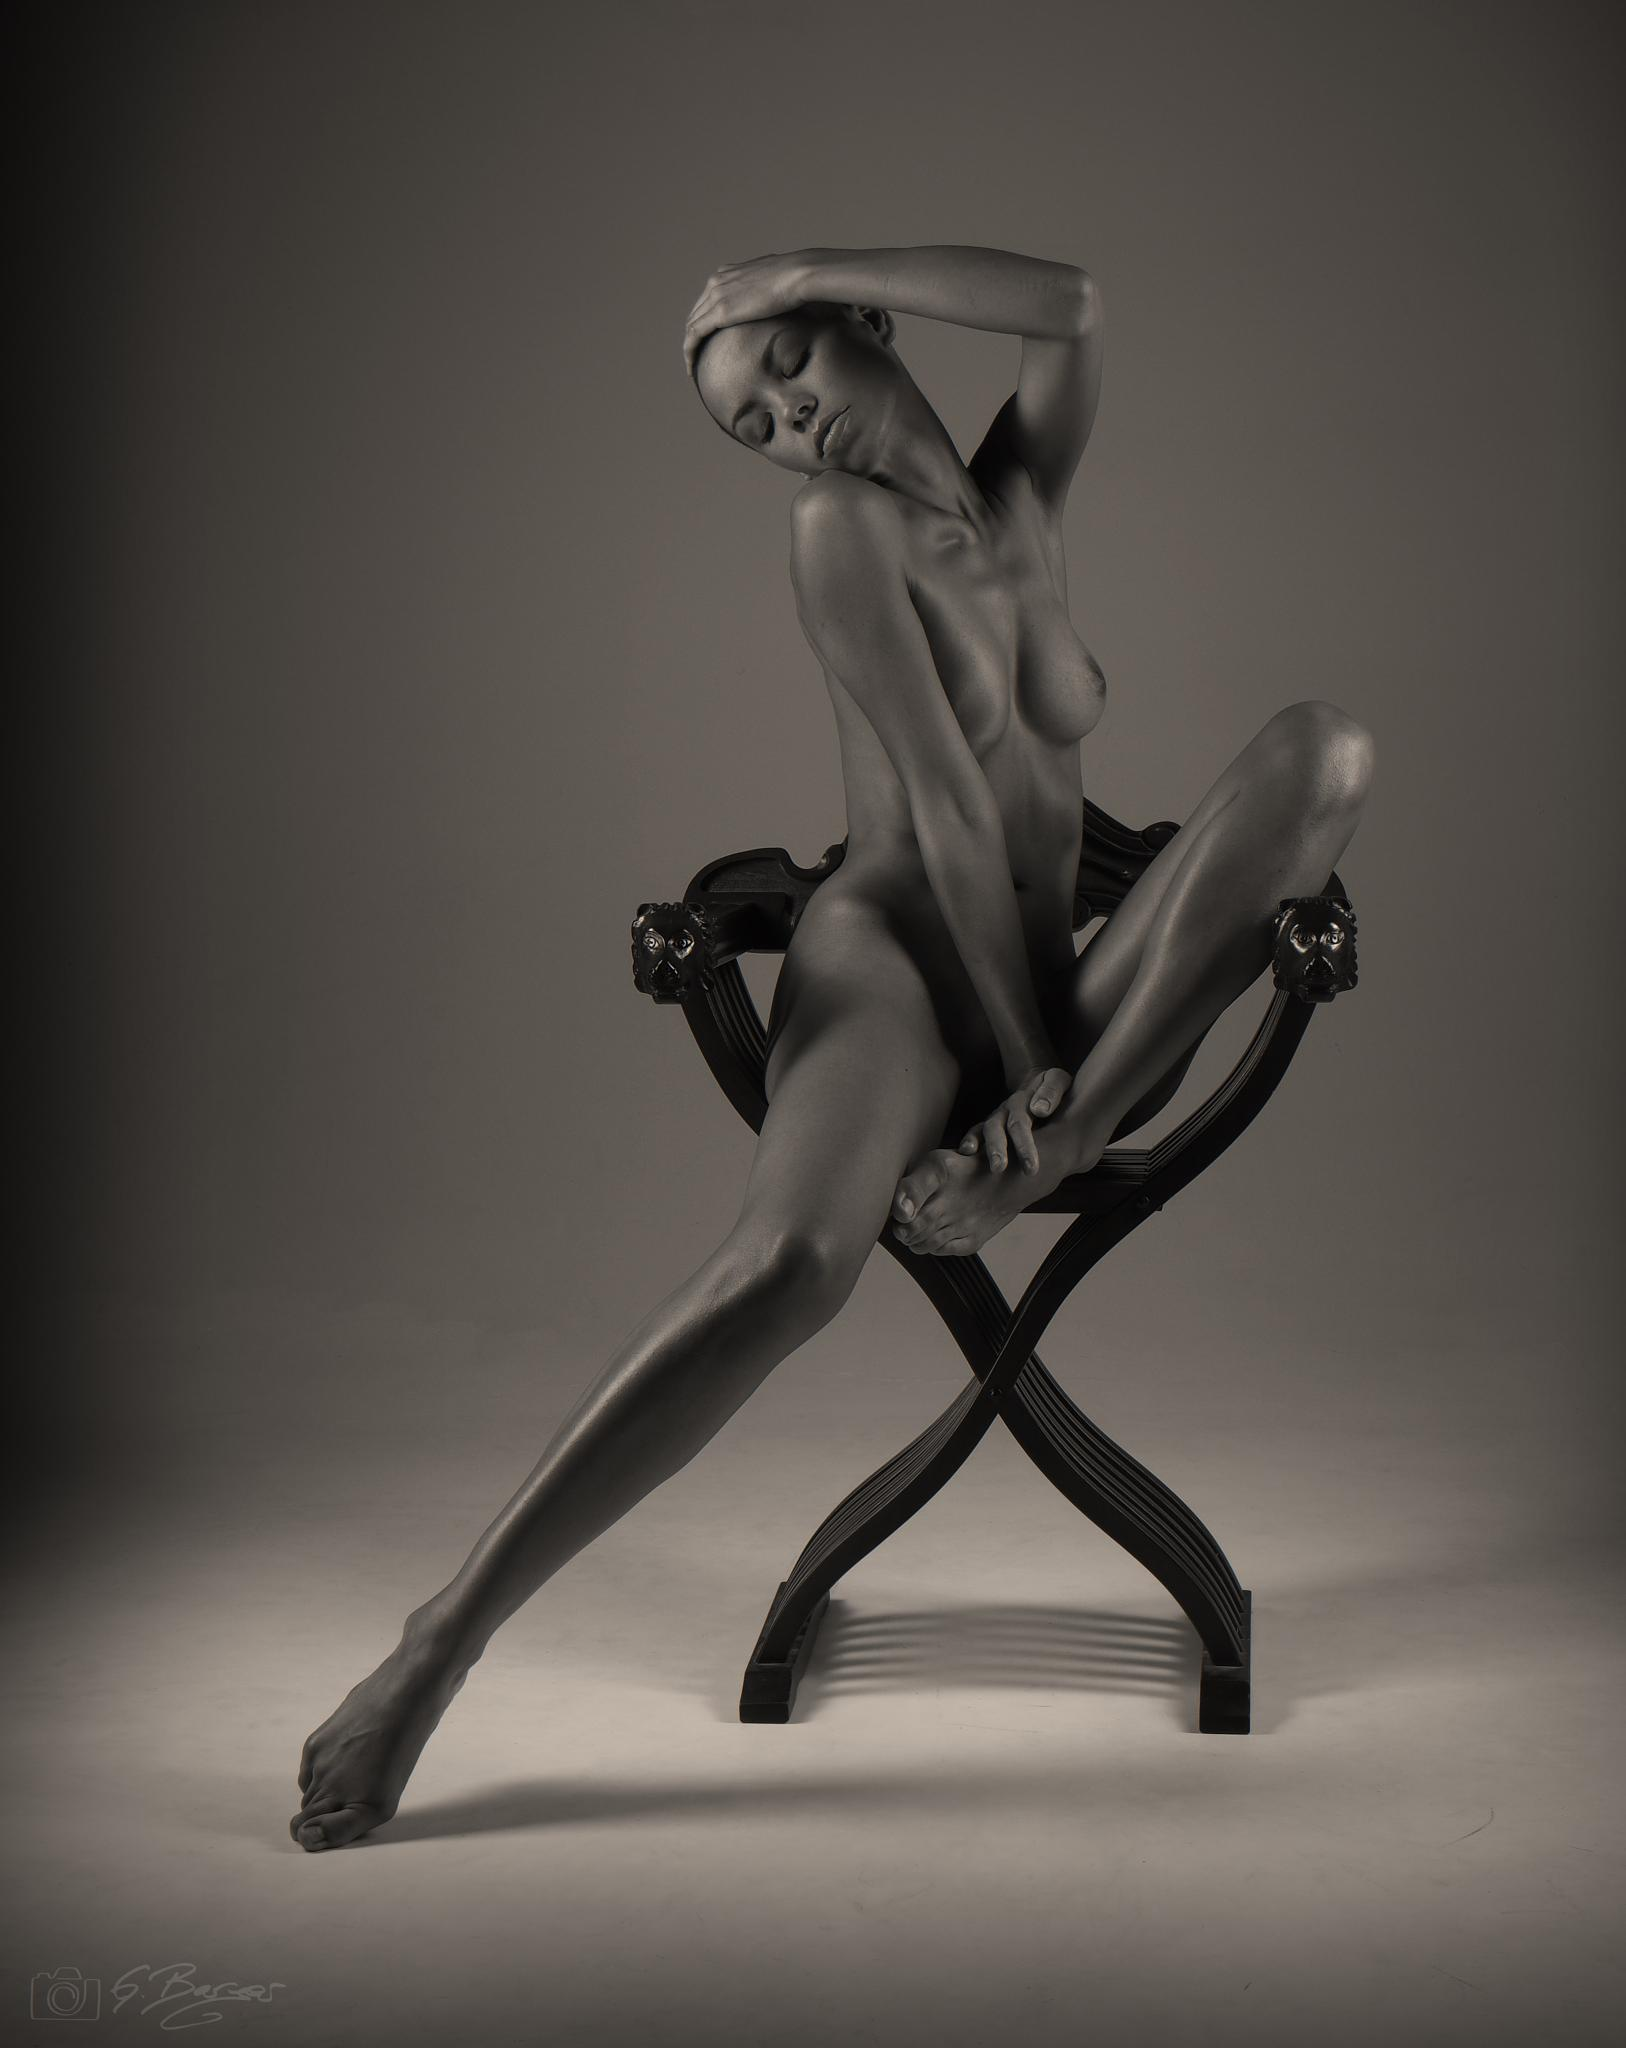 Dorka and the chair by Gerald Berger